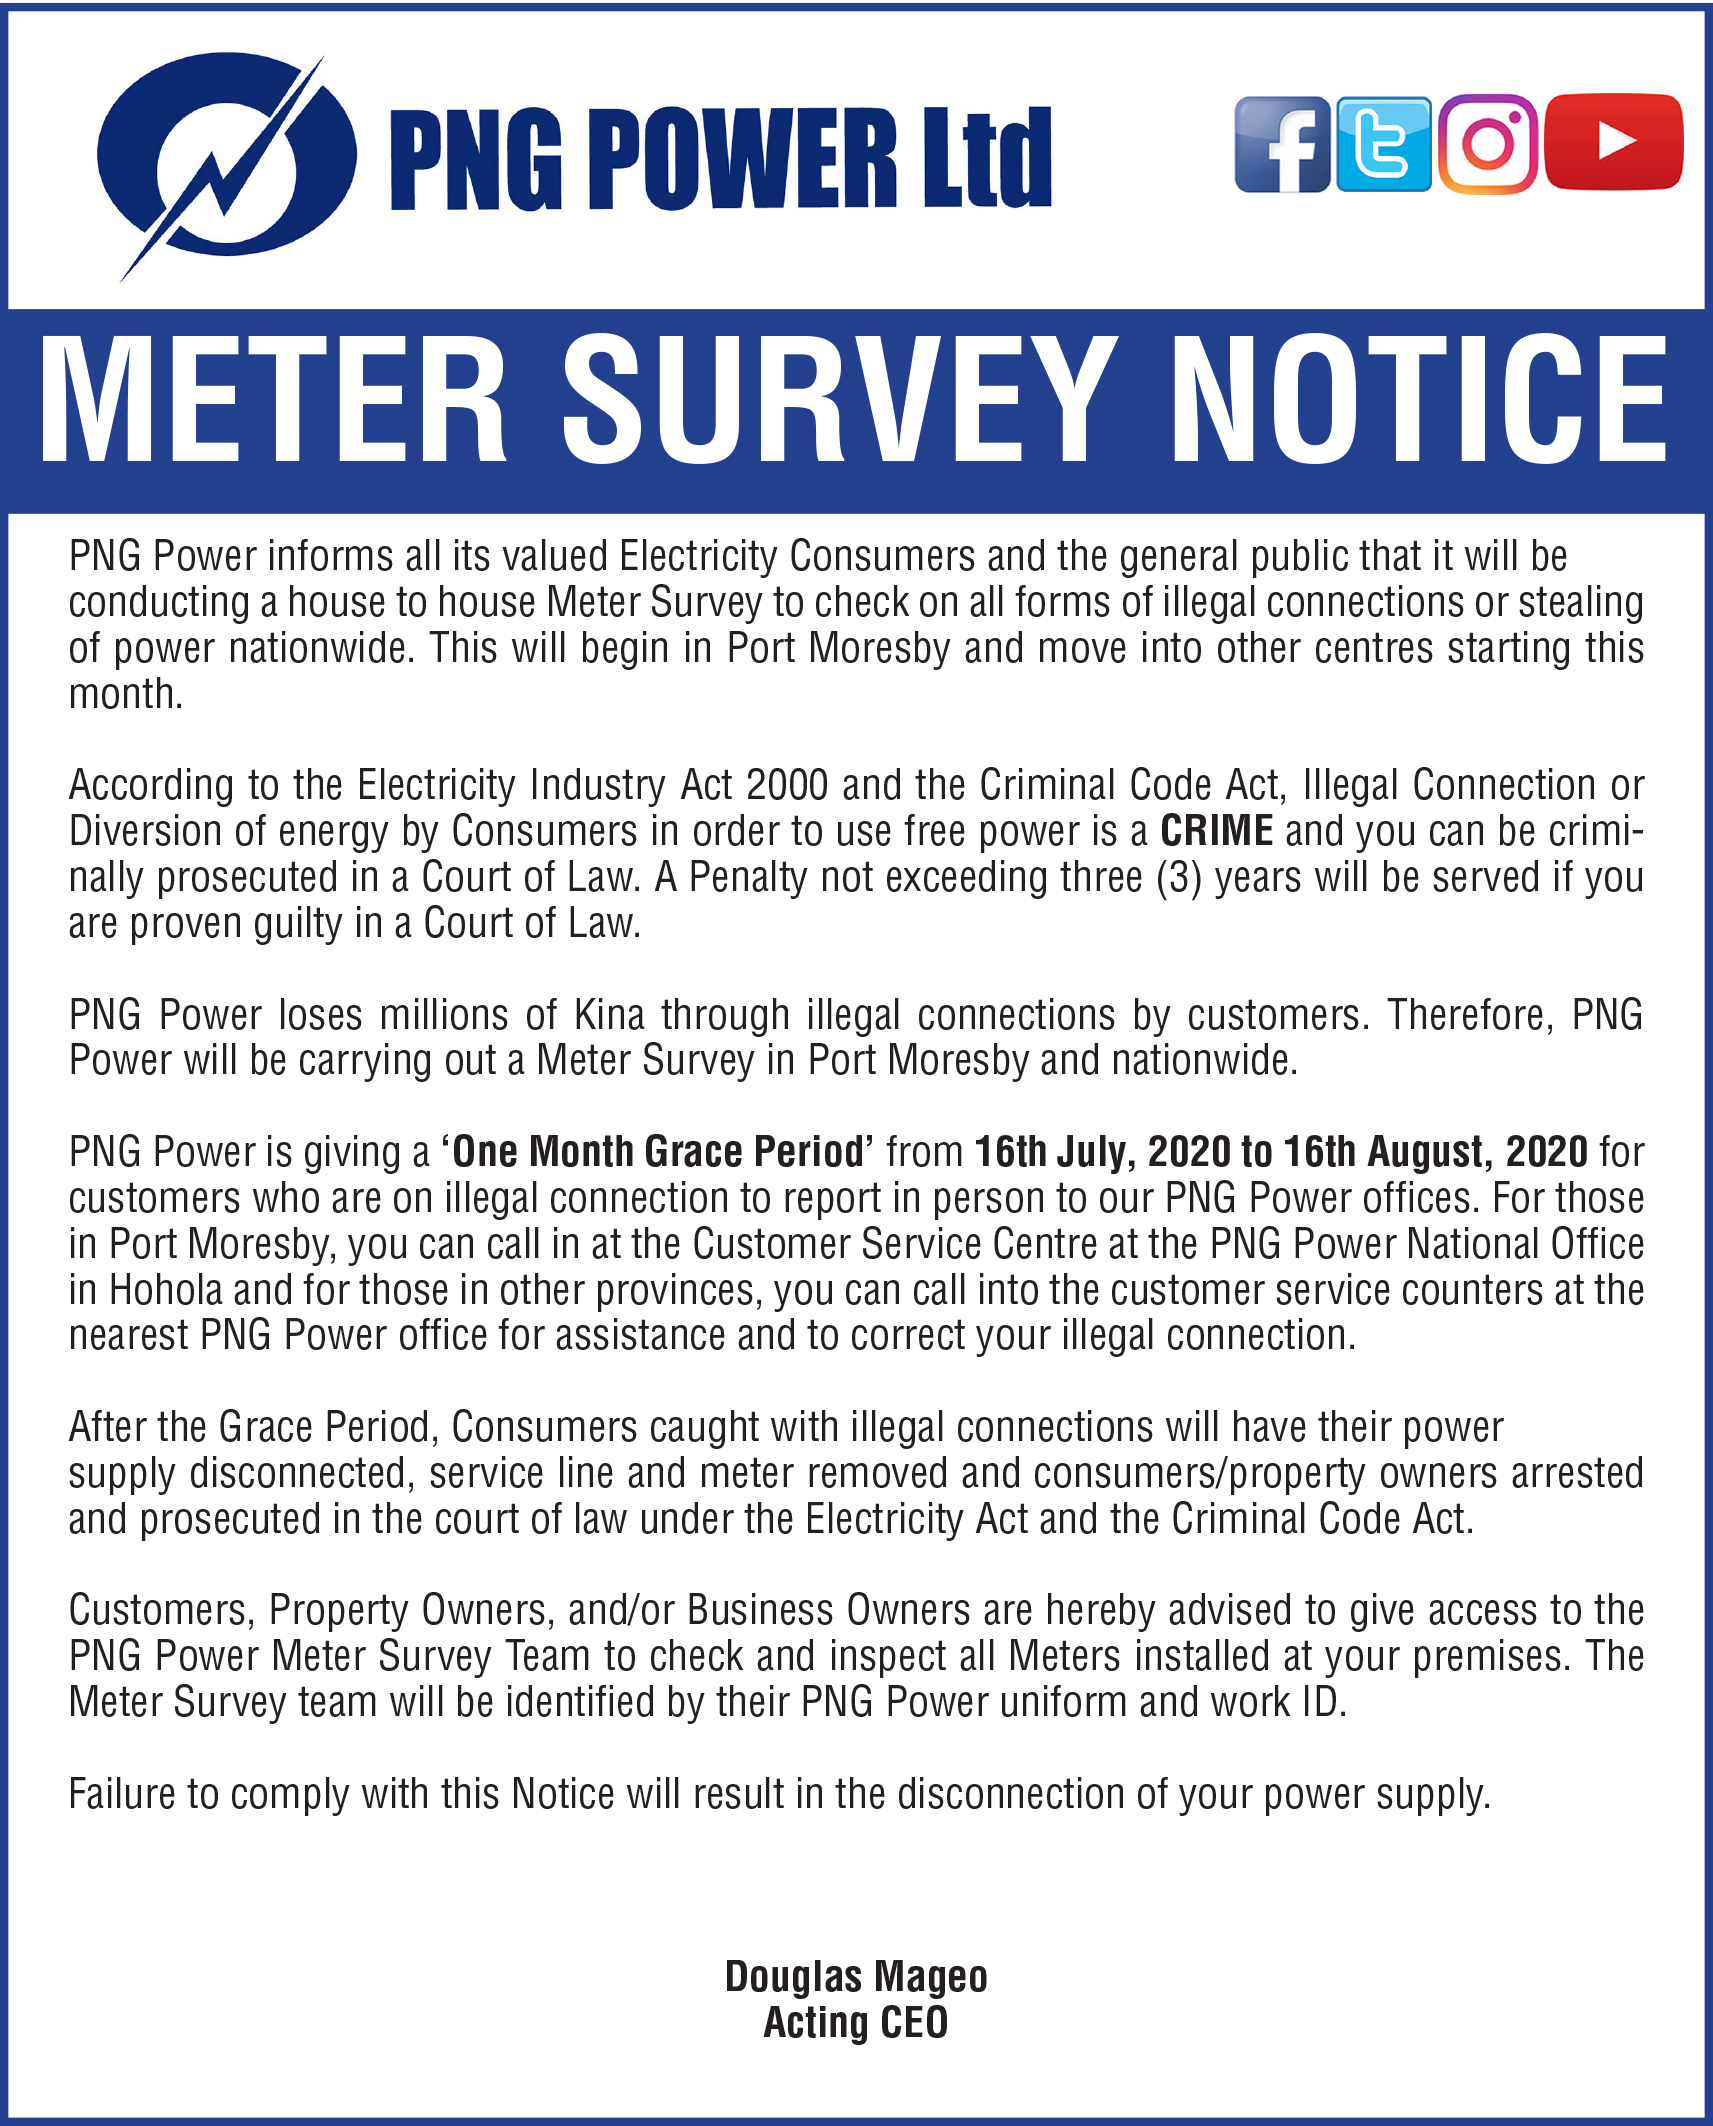 Meter Survey to be carried out nationwide